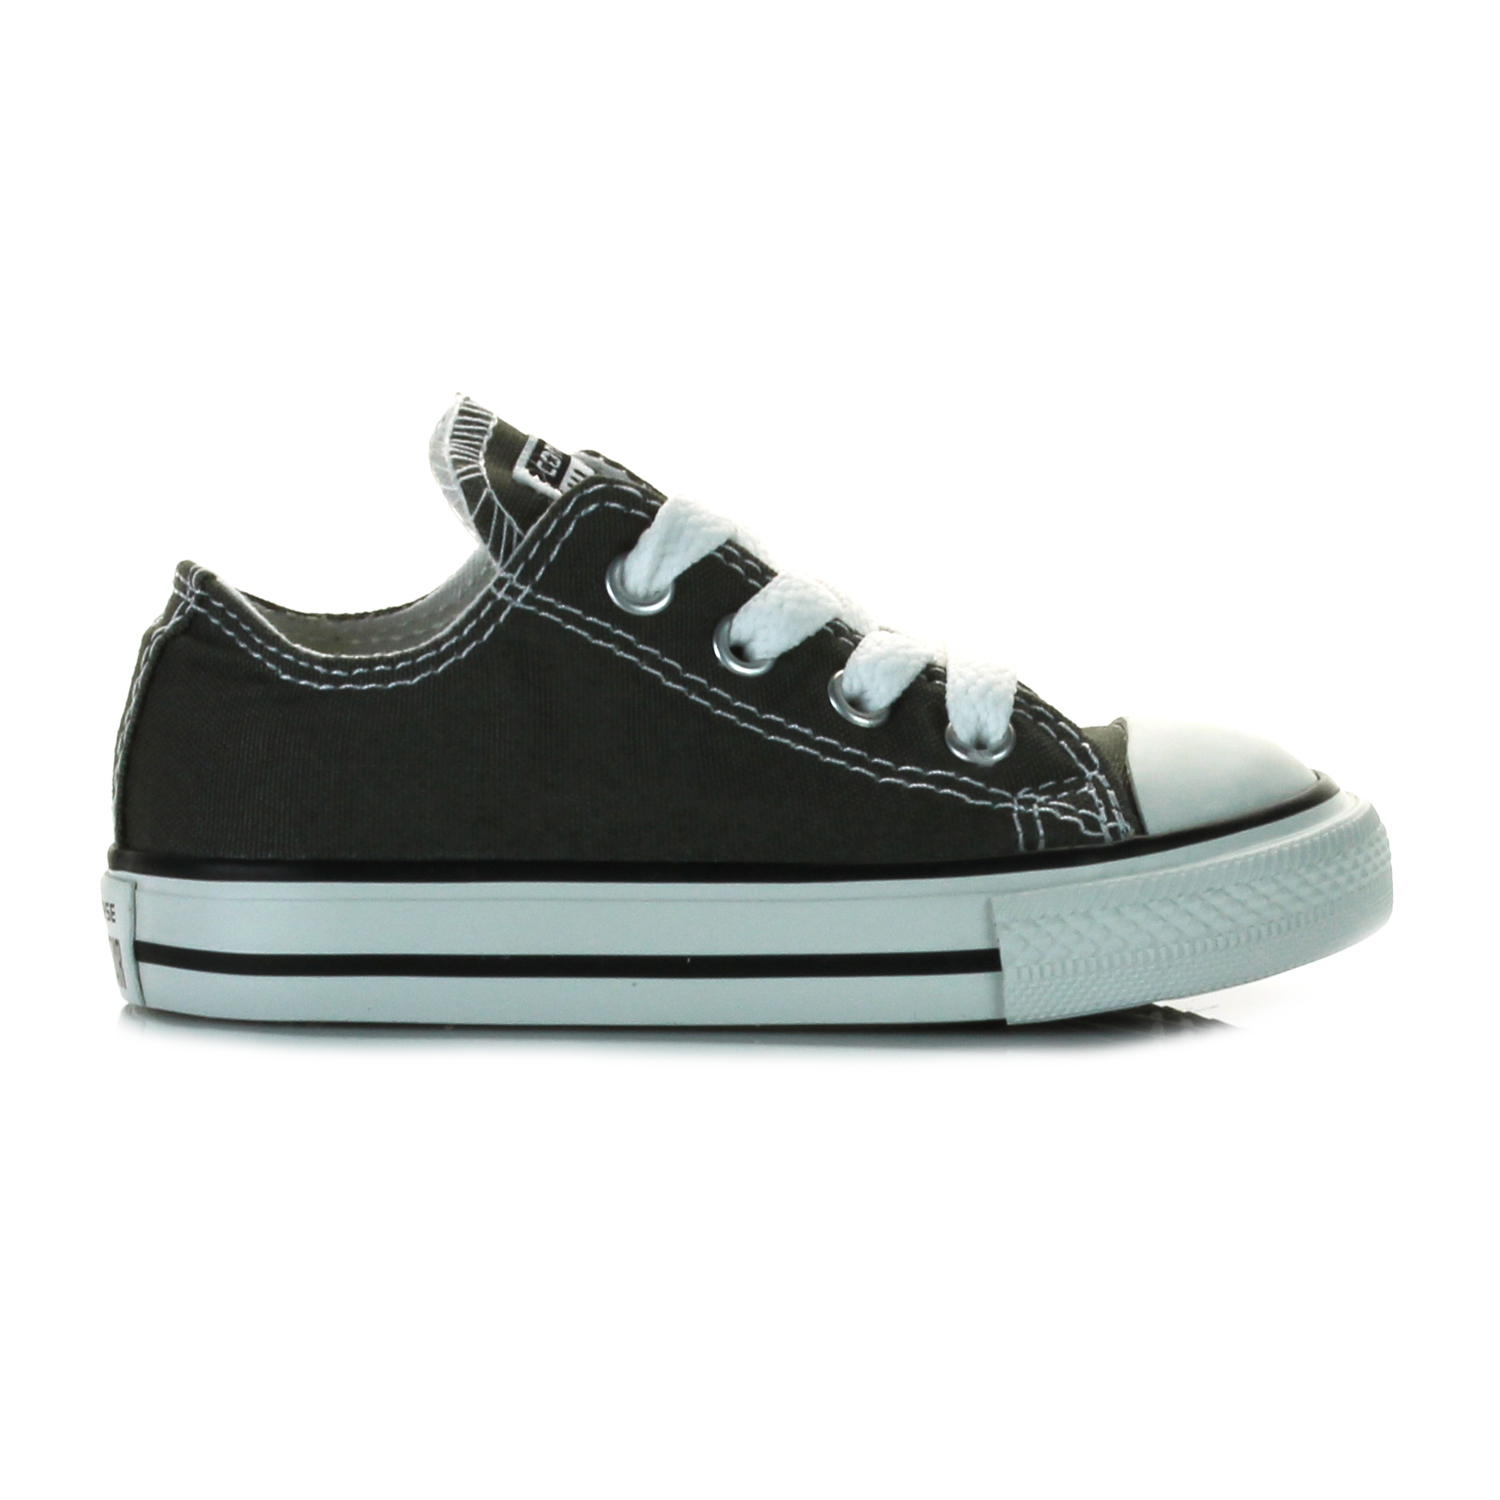 Converse All Star Chuck Taylor I ( 7J794C ) παπούτσια    παιδί    βρεφικά  size 17 27